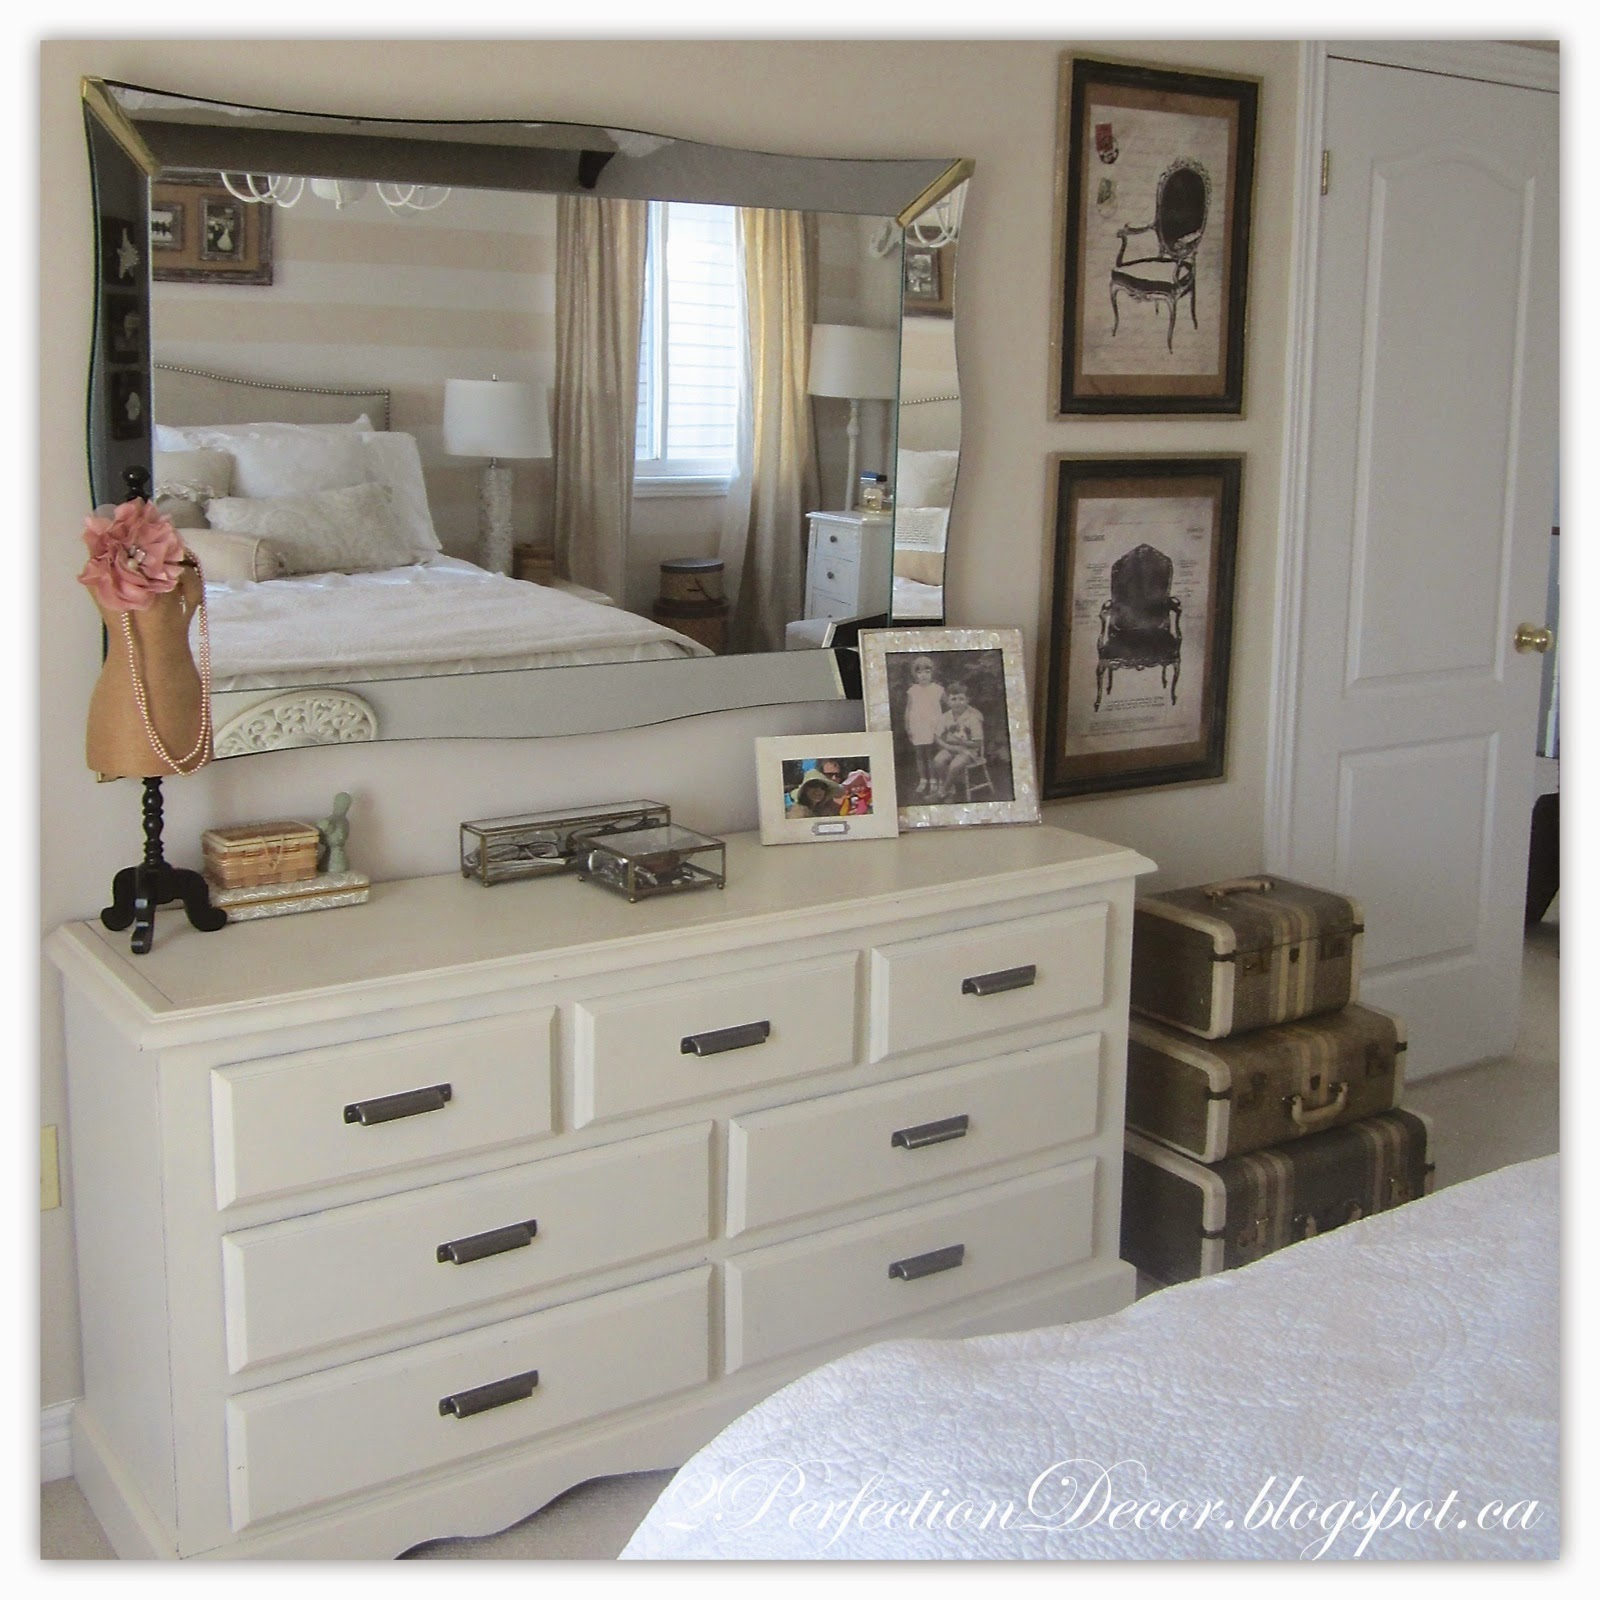 2perfection decor master bedroom full reveal part 2 12270 | 2perfectiondecor masterbedroomreveal5